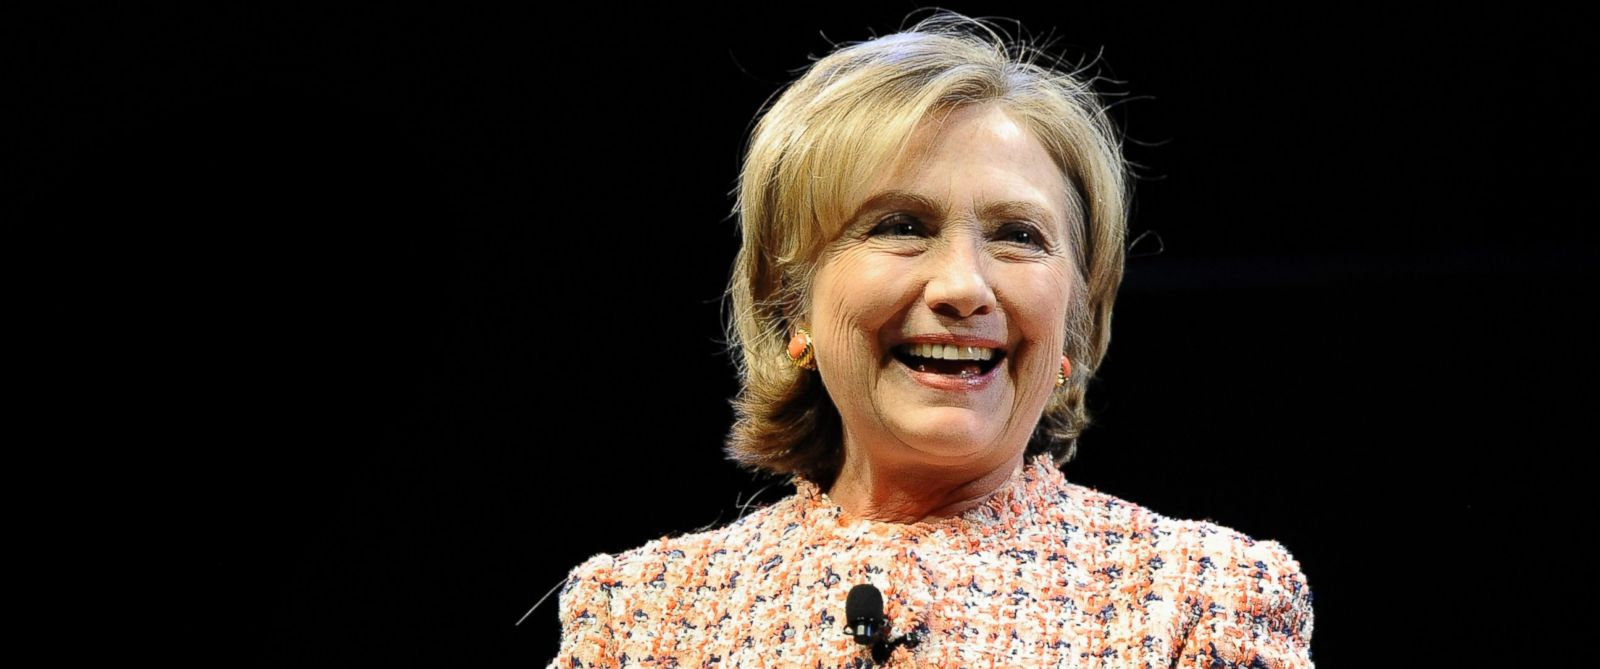 PHOTO: Former Secretary of State Hillary Rodham Clinton speaks at the Edmund Fusco Contemporary Issues Forum at the University of Connecticut, April 23, 2014, in Storrs, Conn.